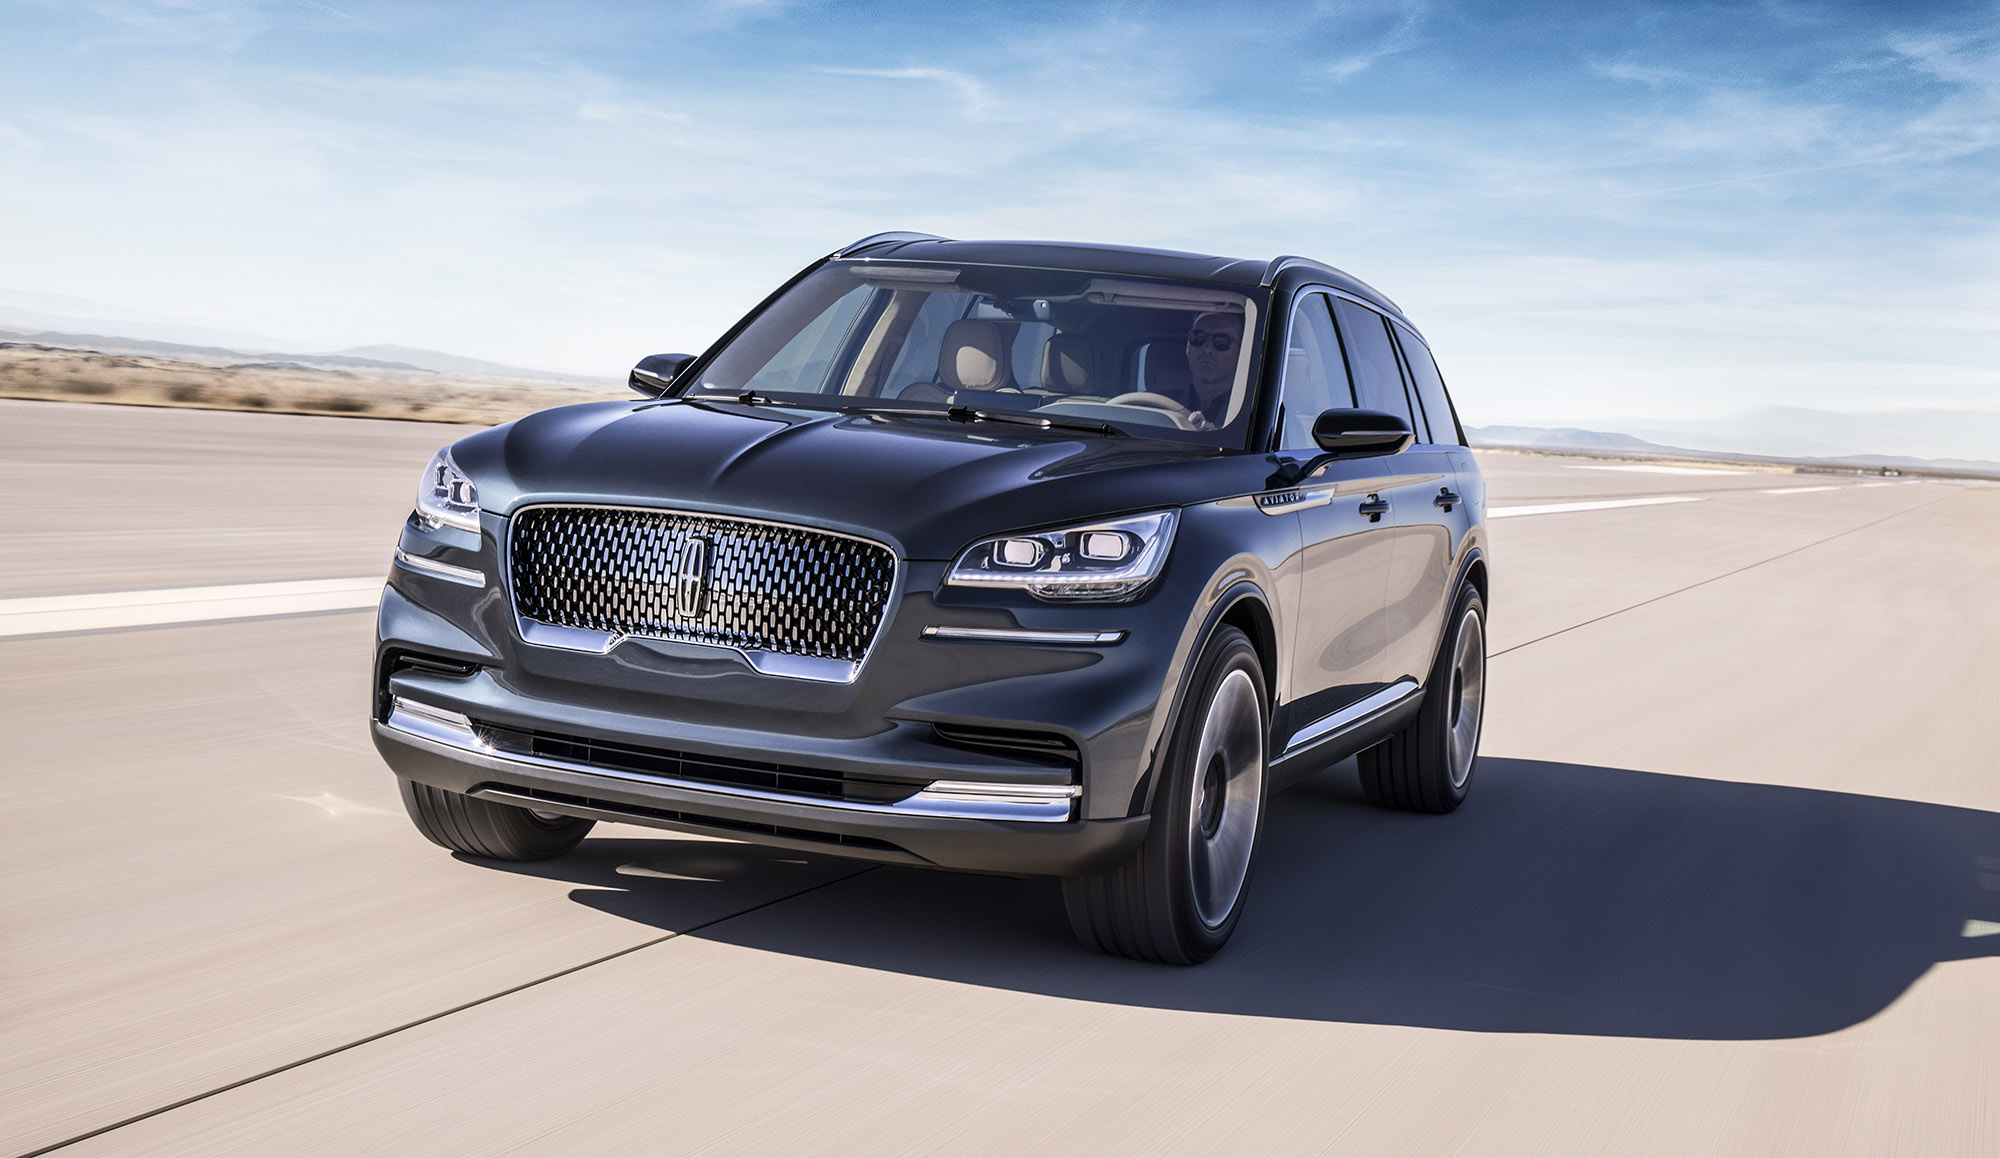 The Best 2019 SUVs: Top Vehicles From 2019 NYIAS | GearJunkie